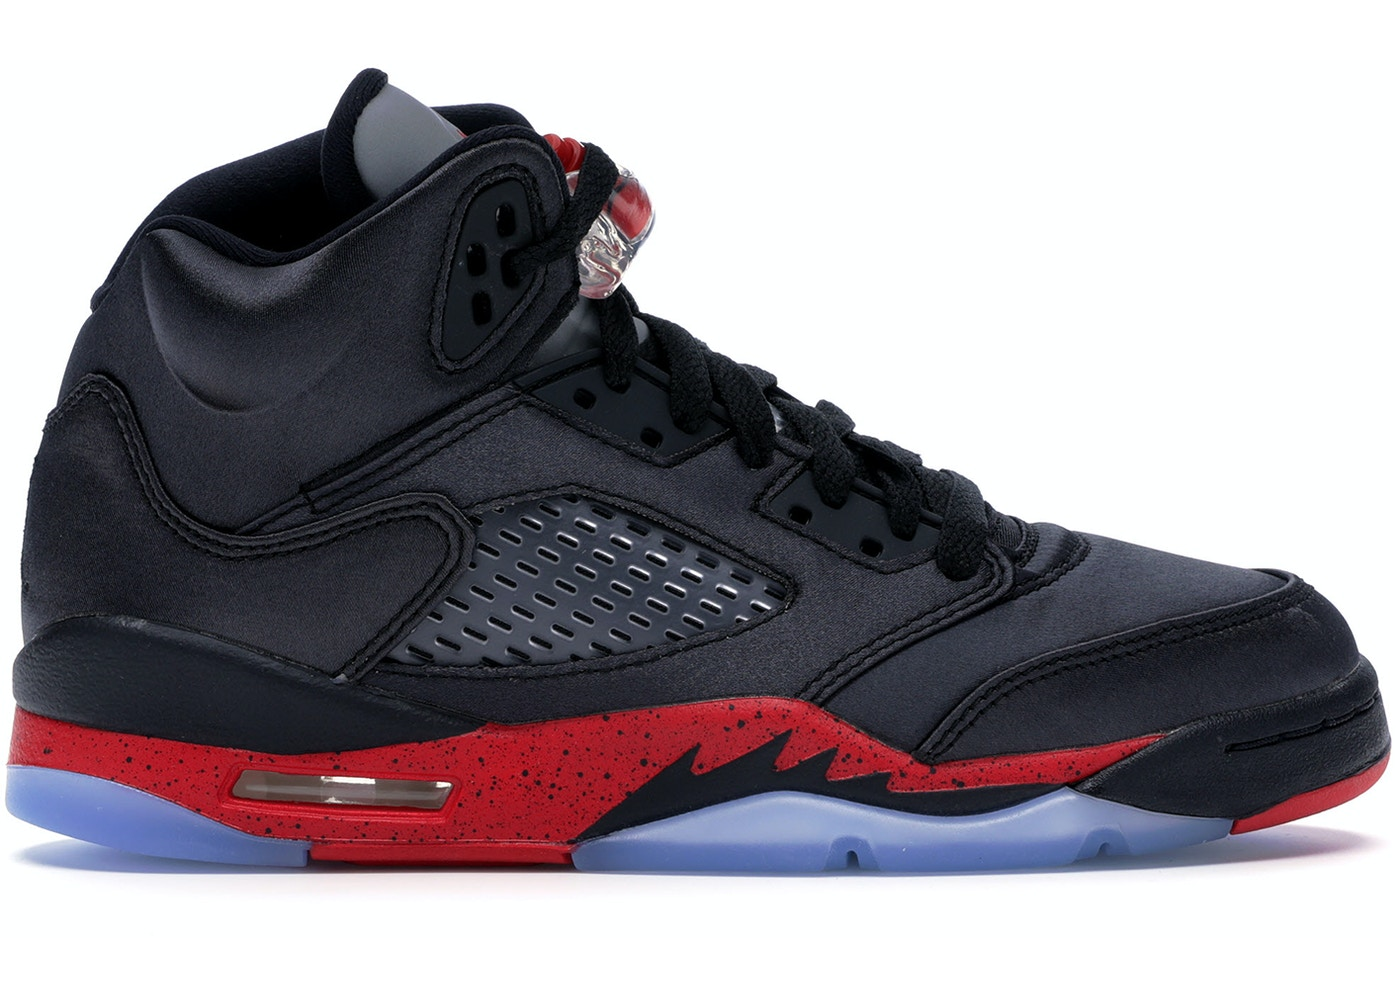 best website 34c6a 14cf3 Jordan 5 Retro Satin Bred (GS) - 440888-006